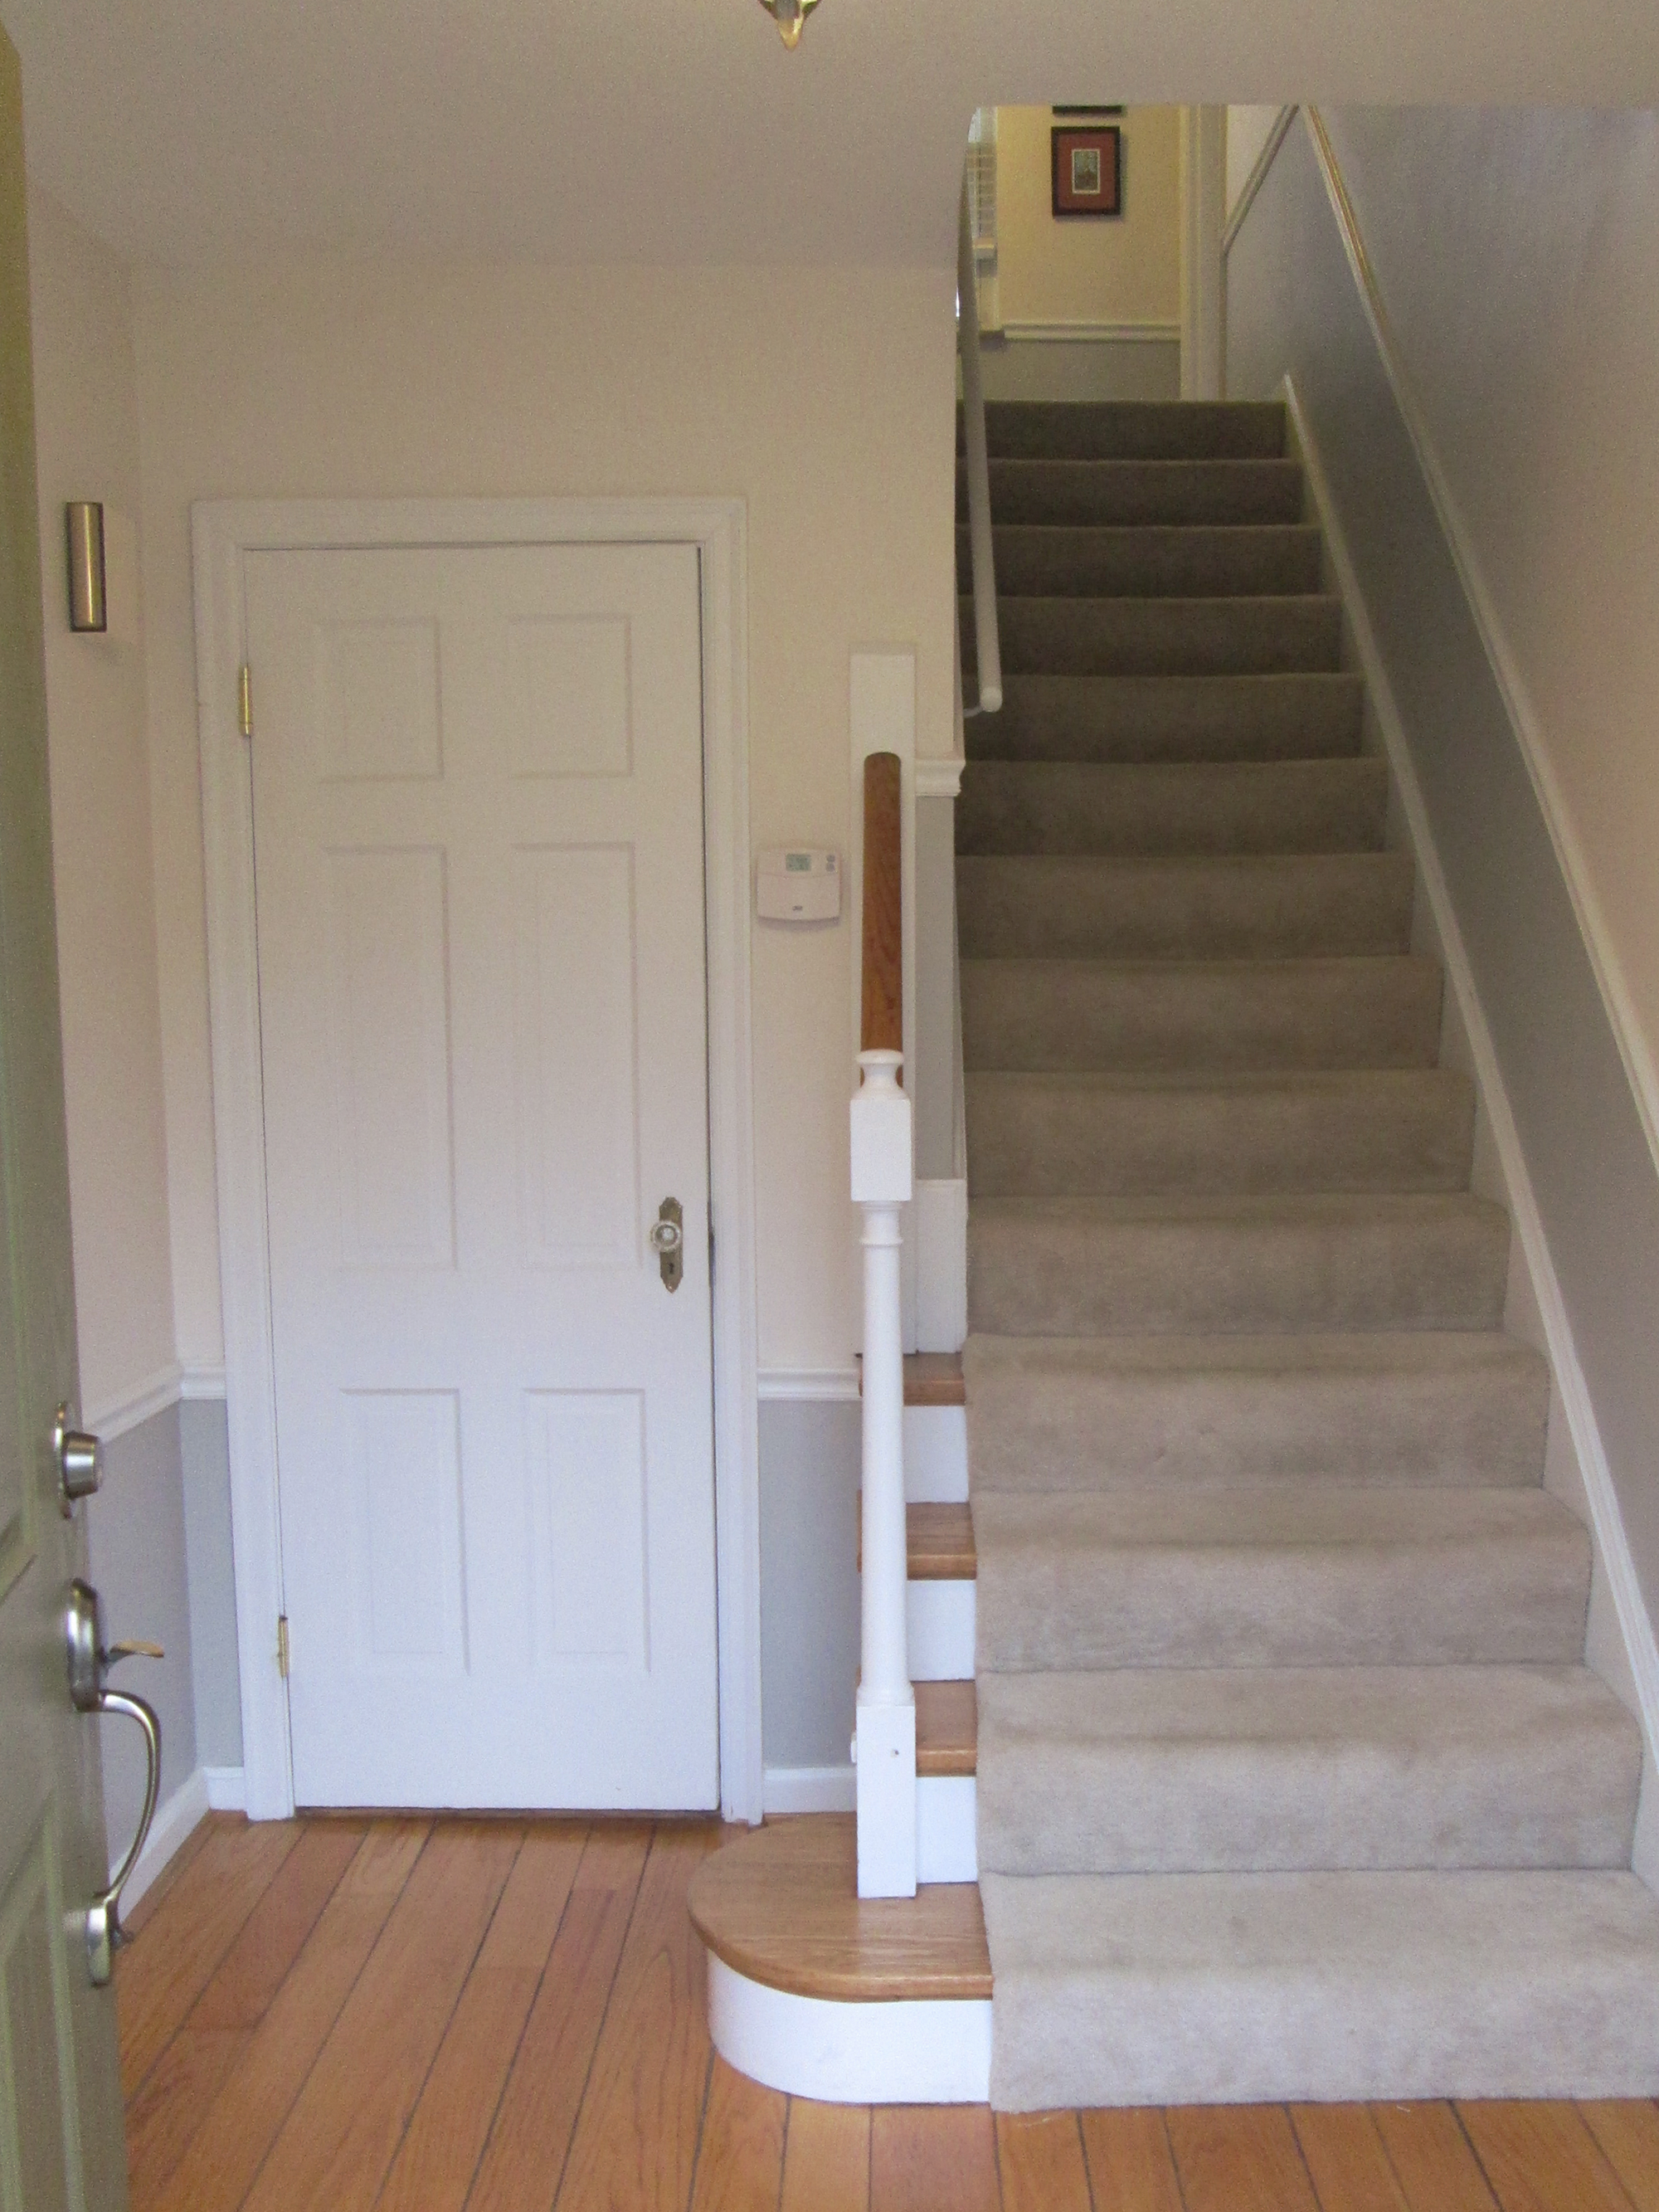 Before cramped entry and stairs